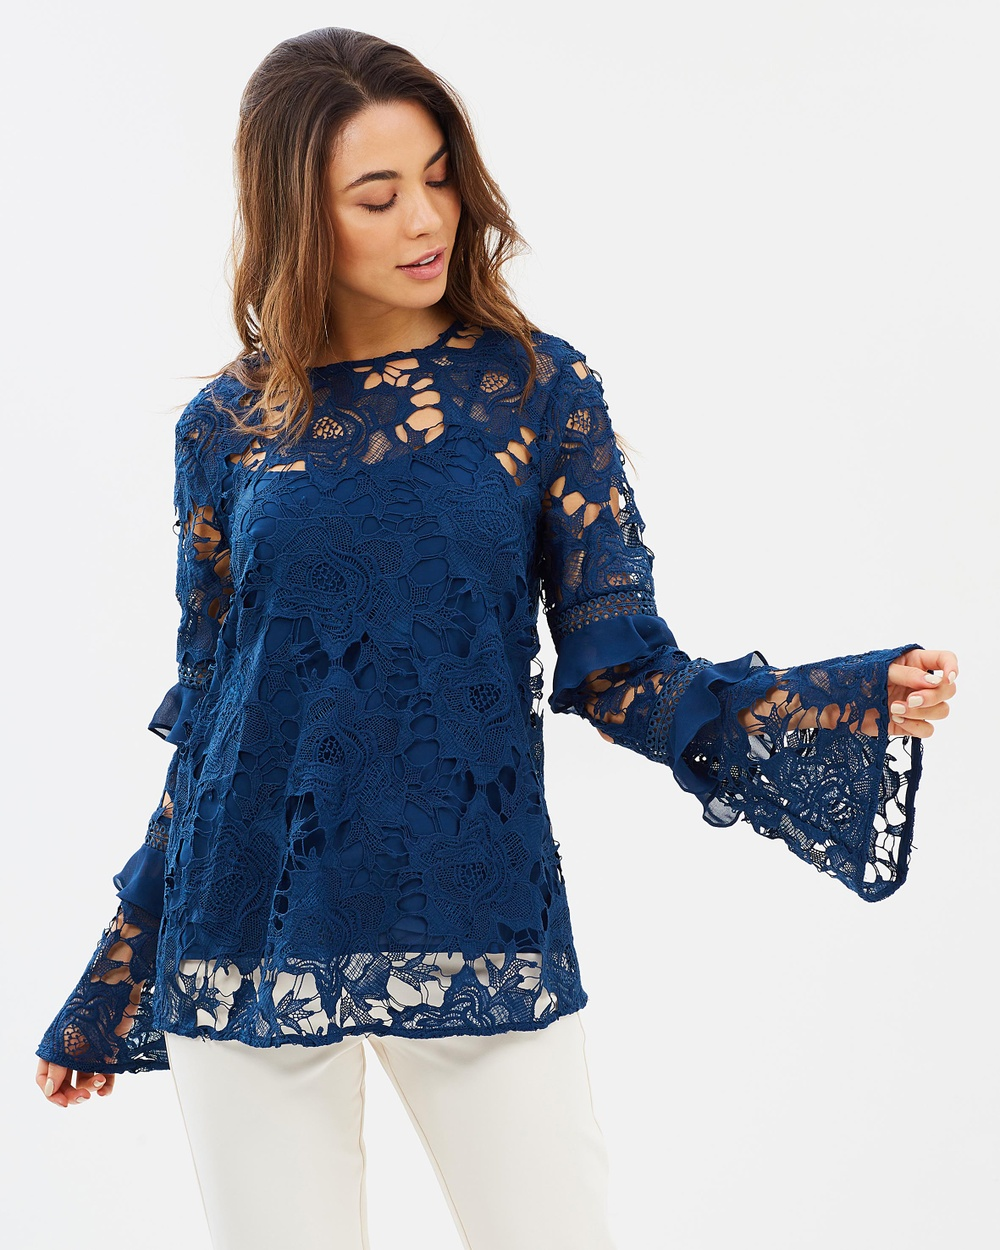 Cooper St Lustrous Lace Long Sleeve Top Tops Navy Lustrous Lace Long Sleeve Top